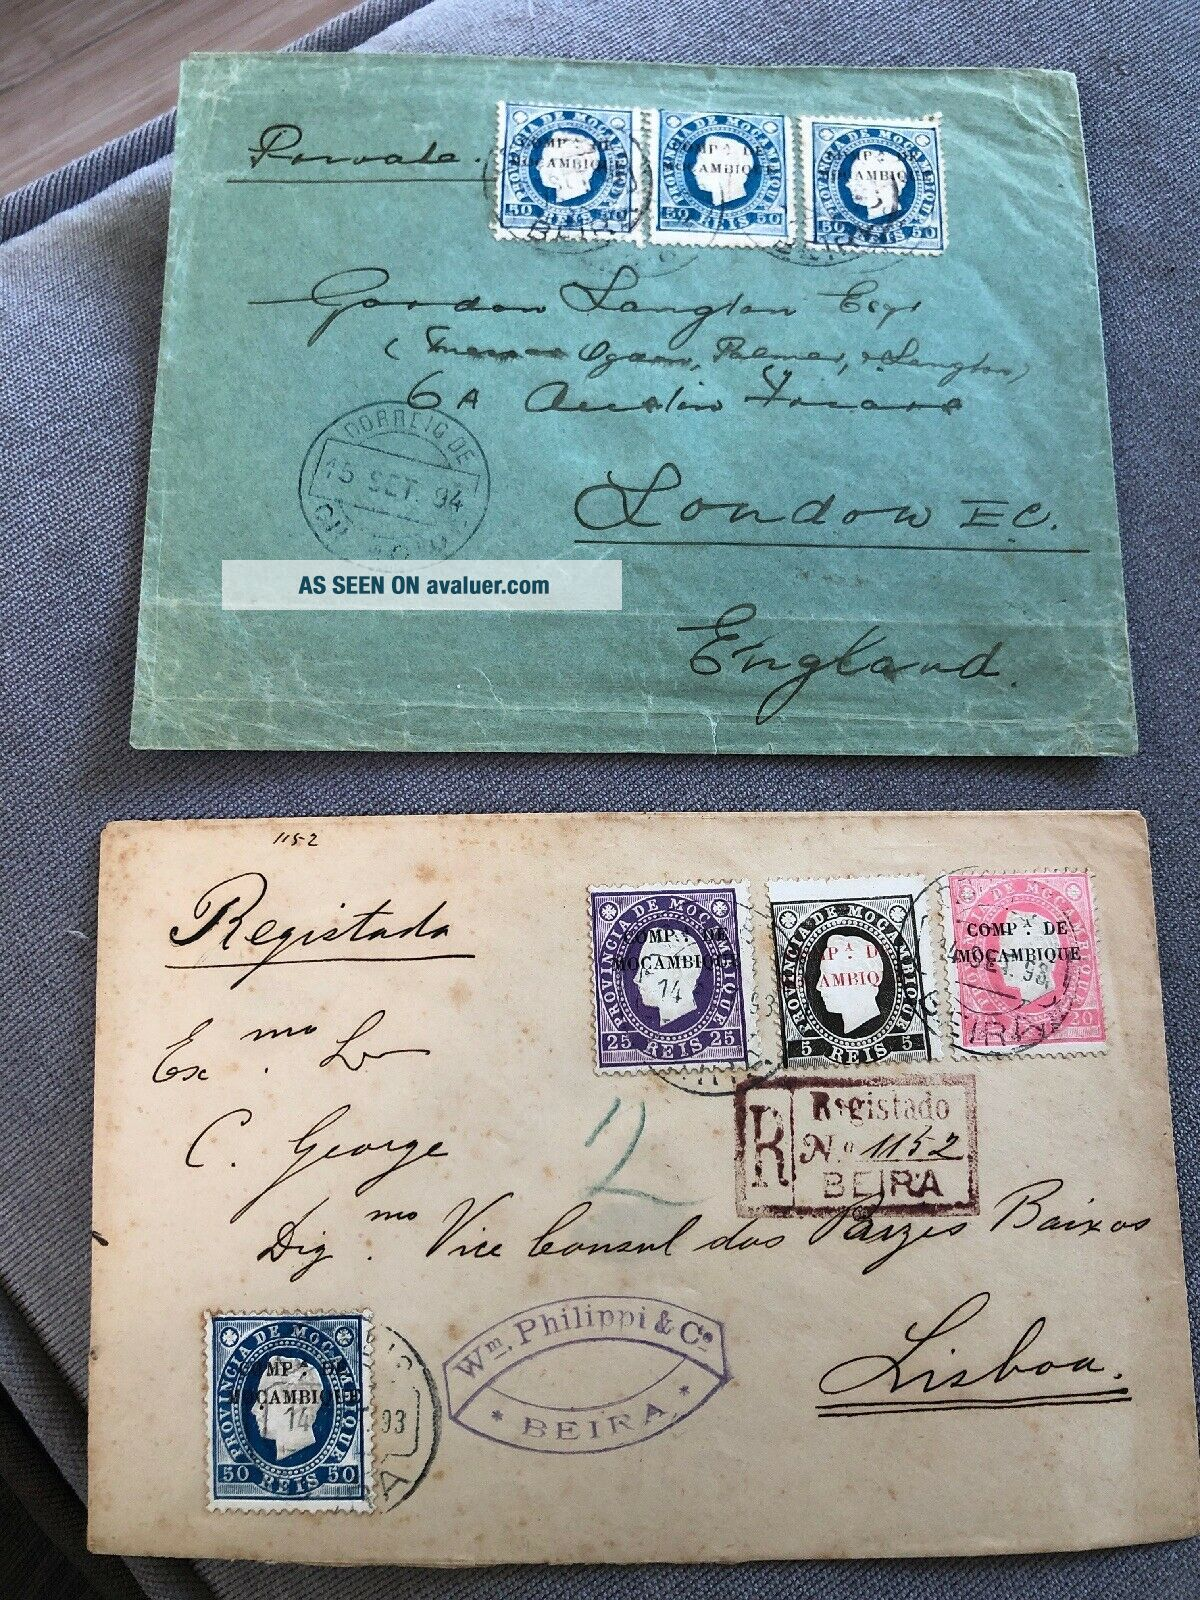 2 1884 & 1885 Portuguese Colonial Mozambique Postal Covers To Lisbon & London